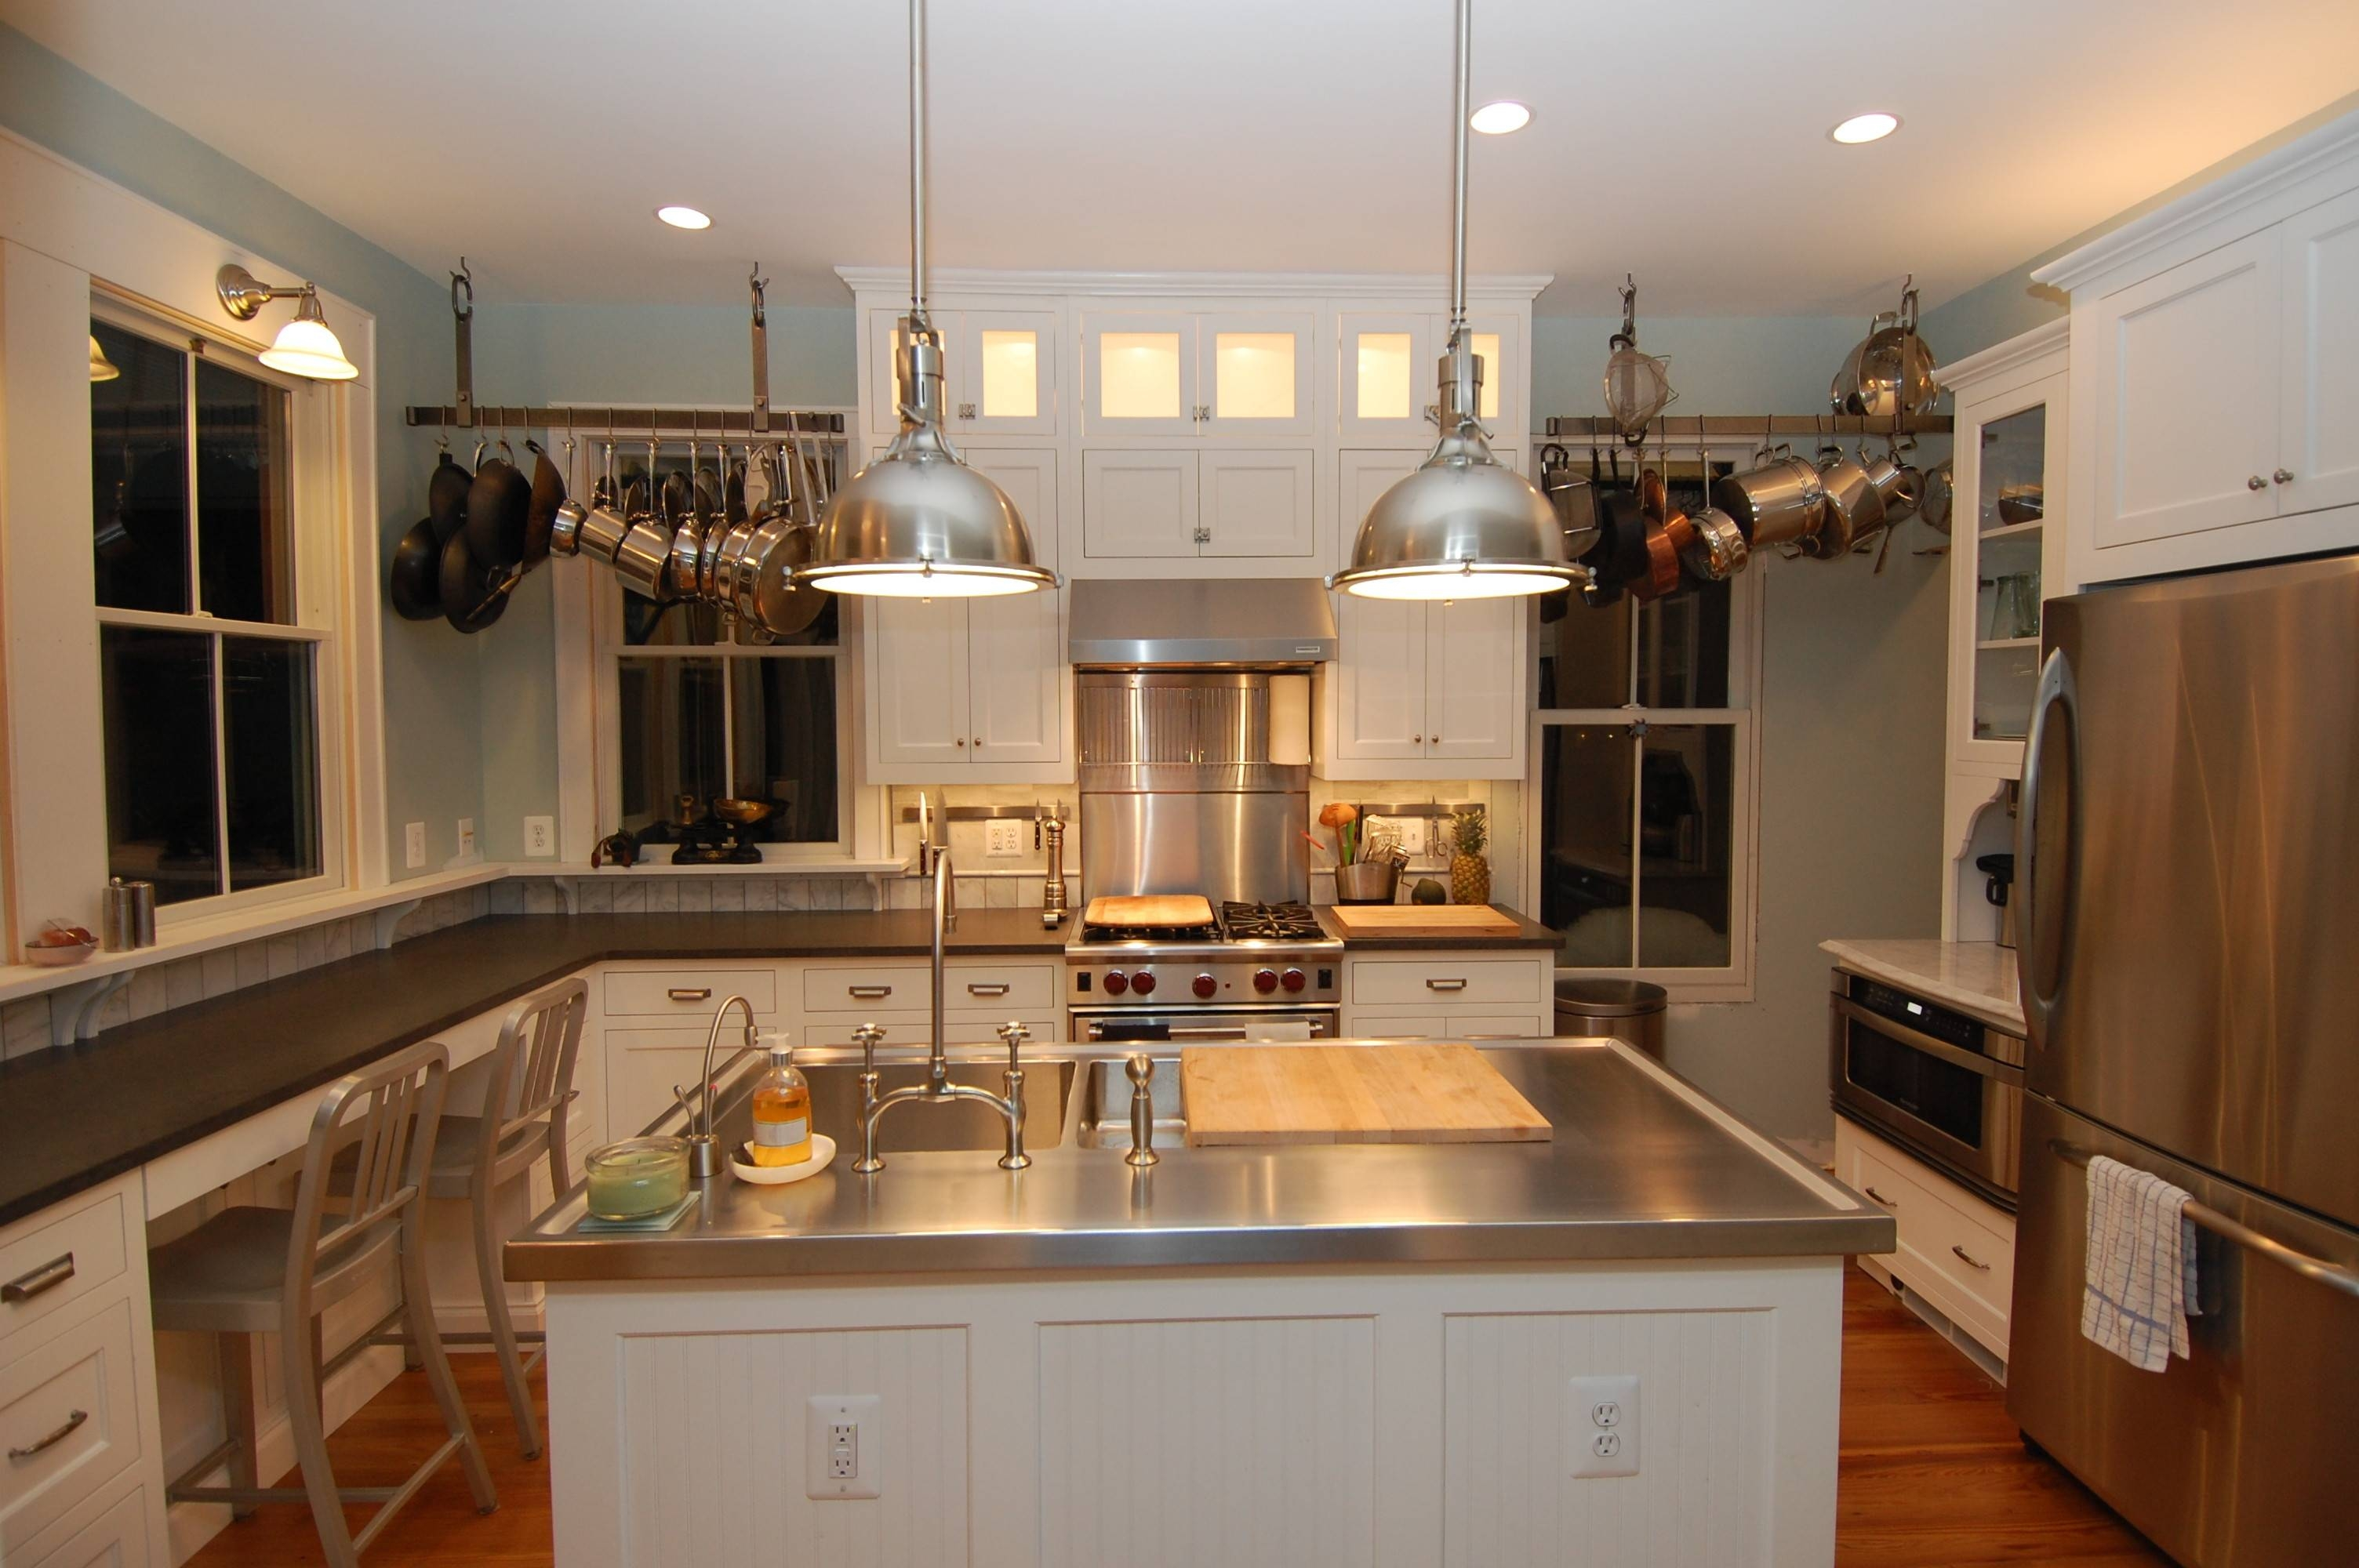 Kitchen : Stainless Steel Kitchen Countertops Original With White In Stainless Steel Kitchen Pendant Lights (View 6 of 15)